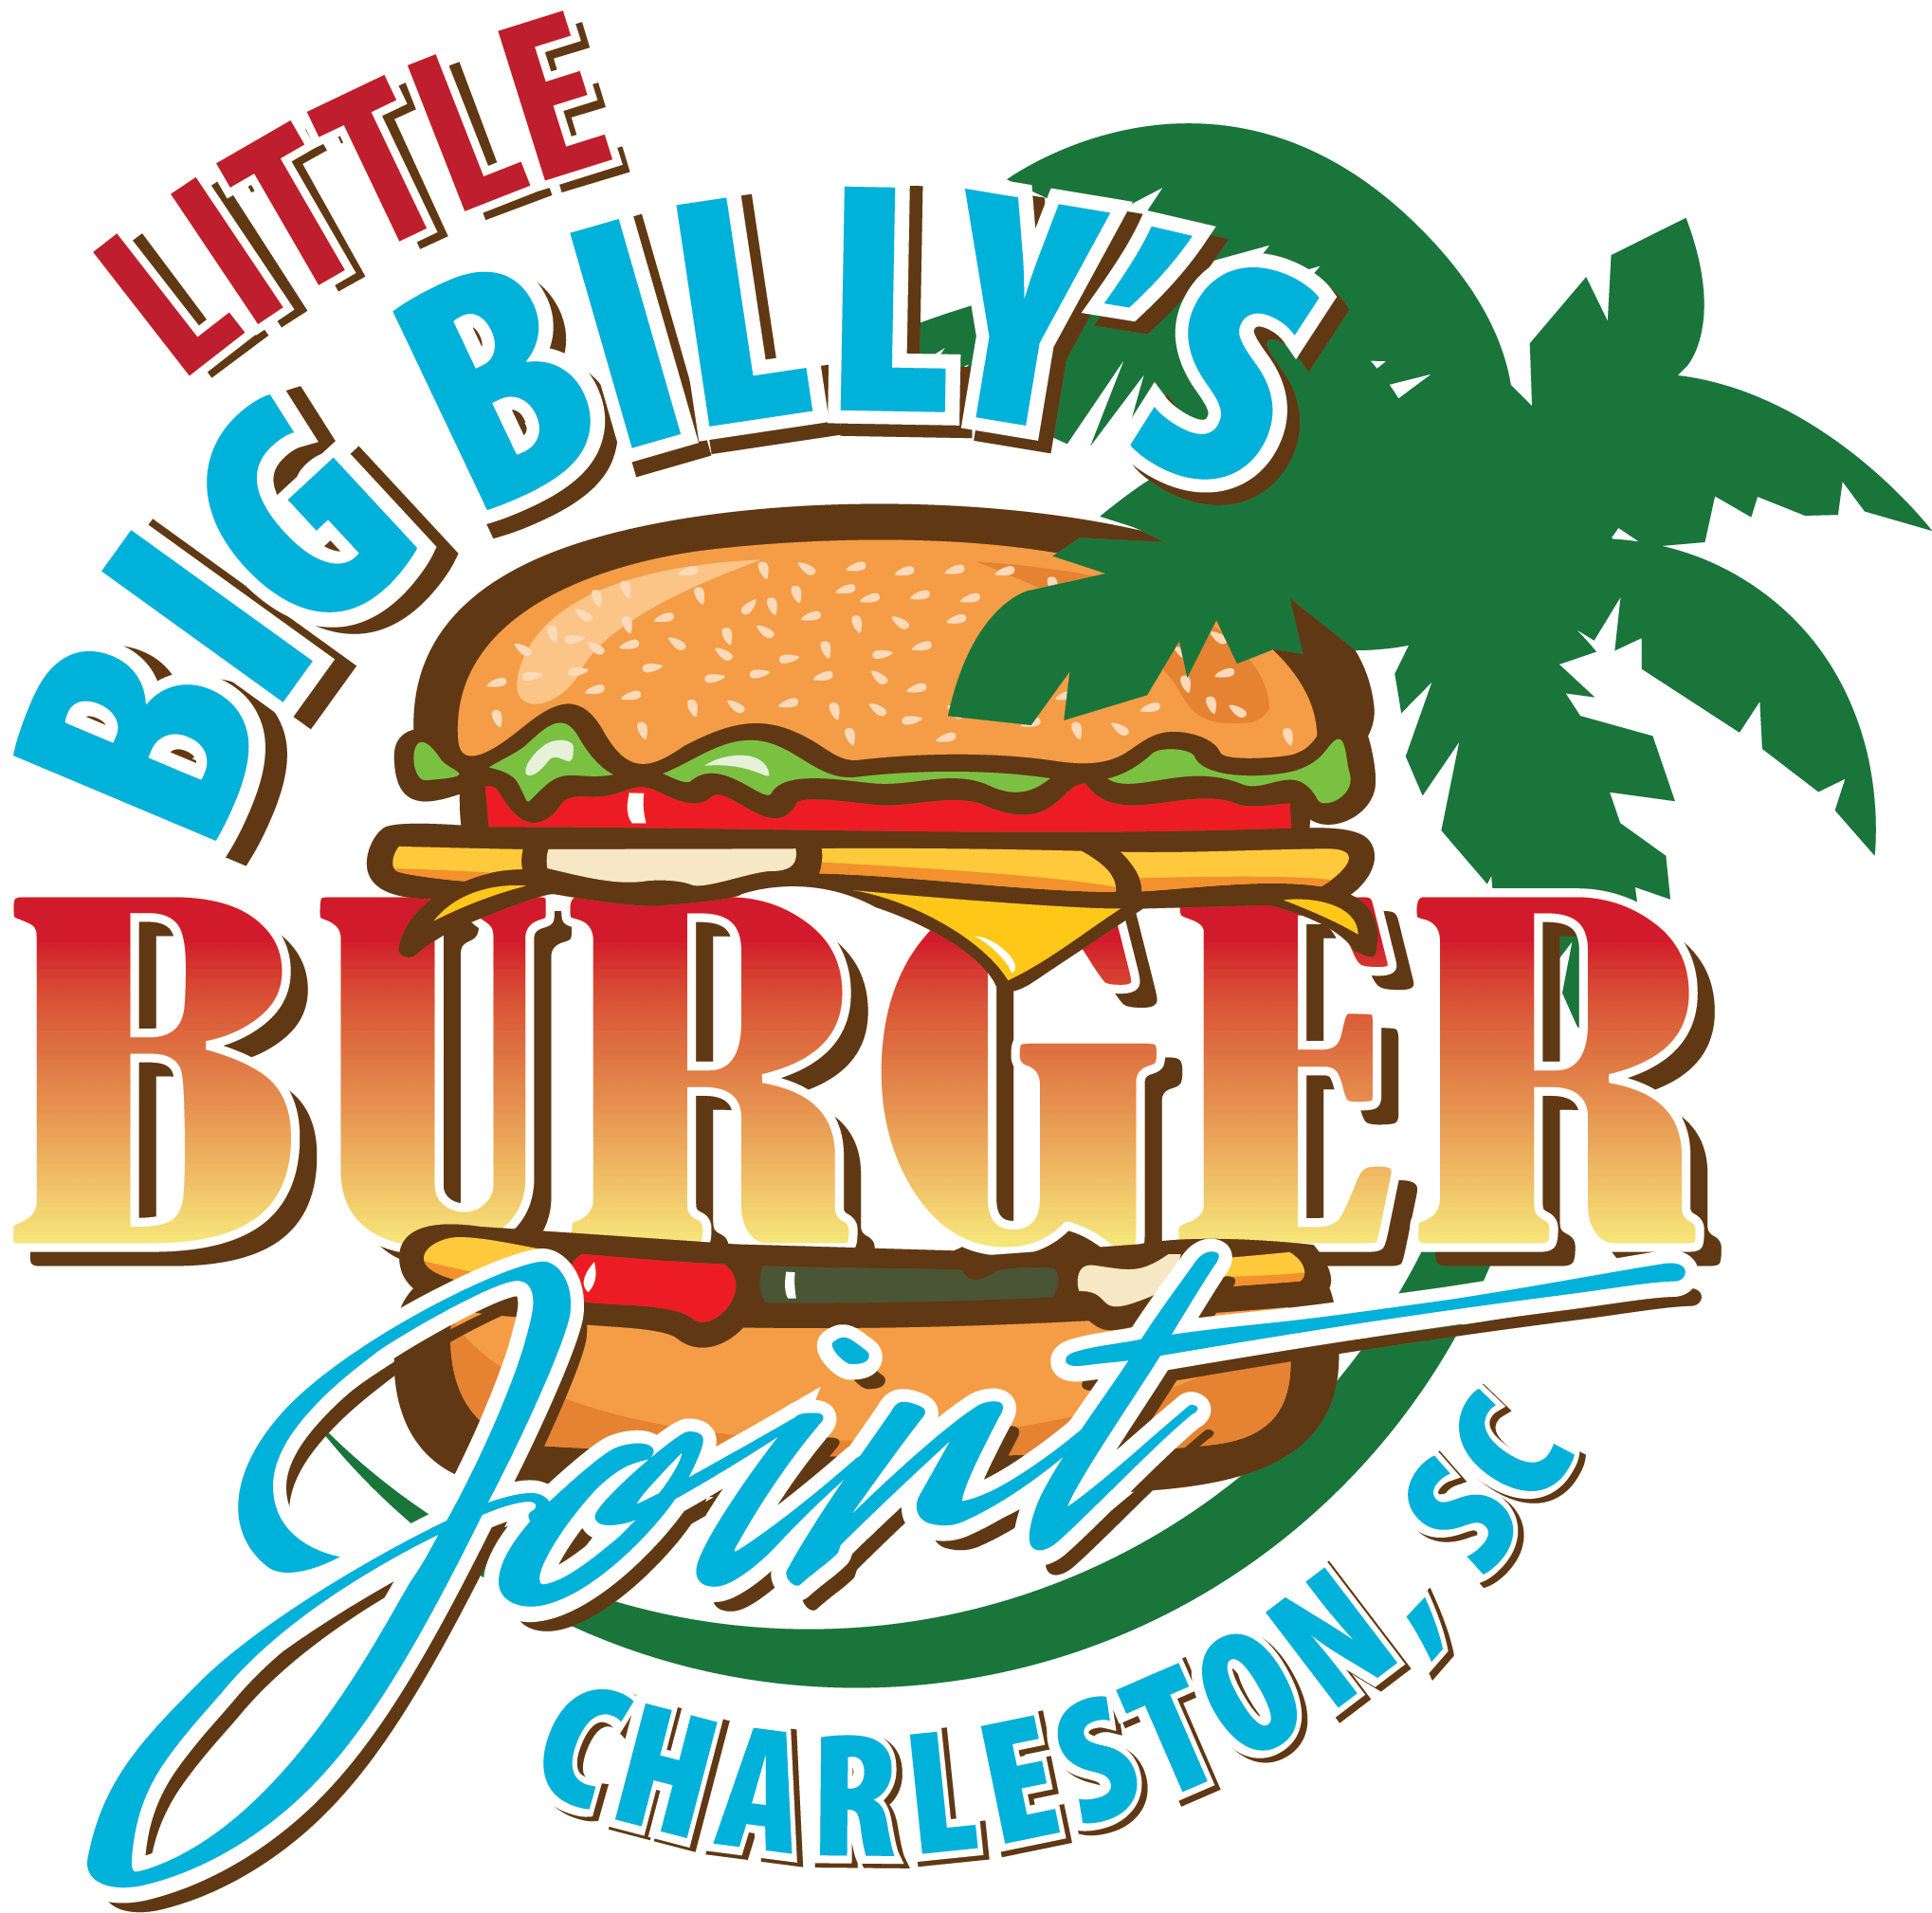 little big billy's, west ashley burger